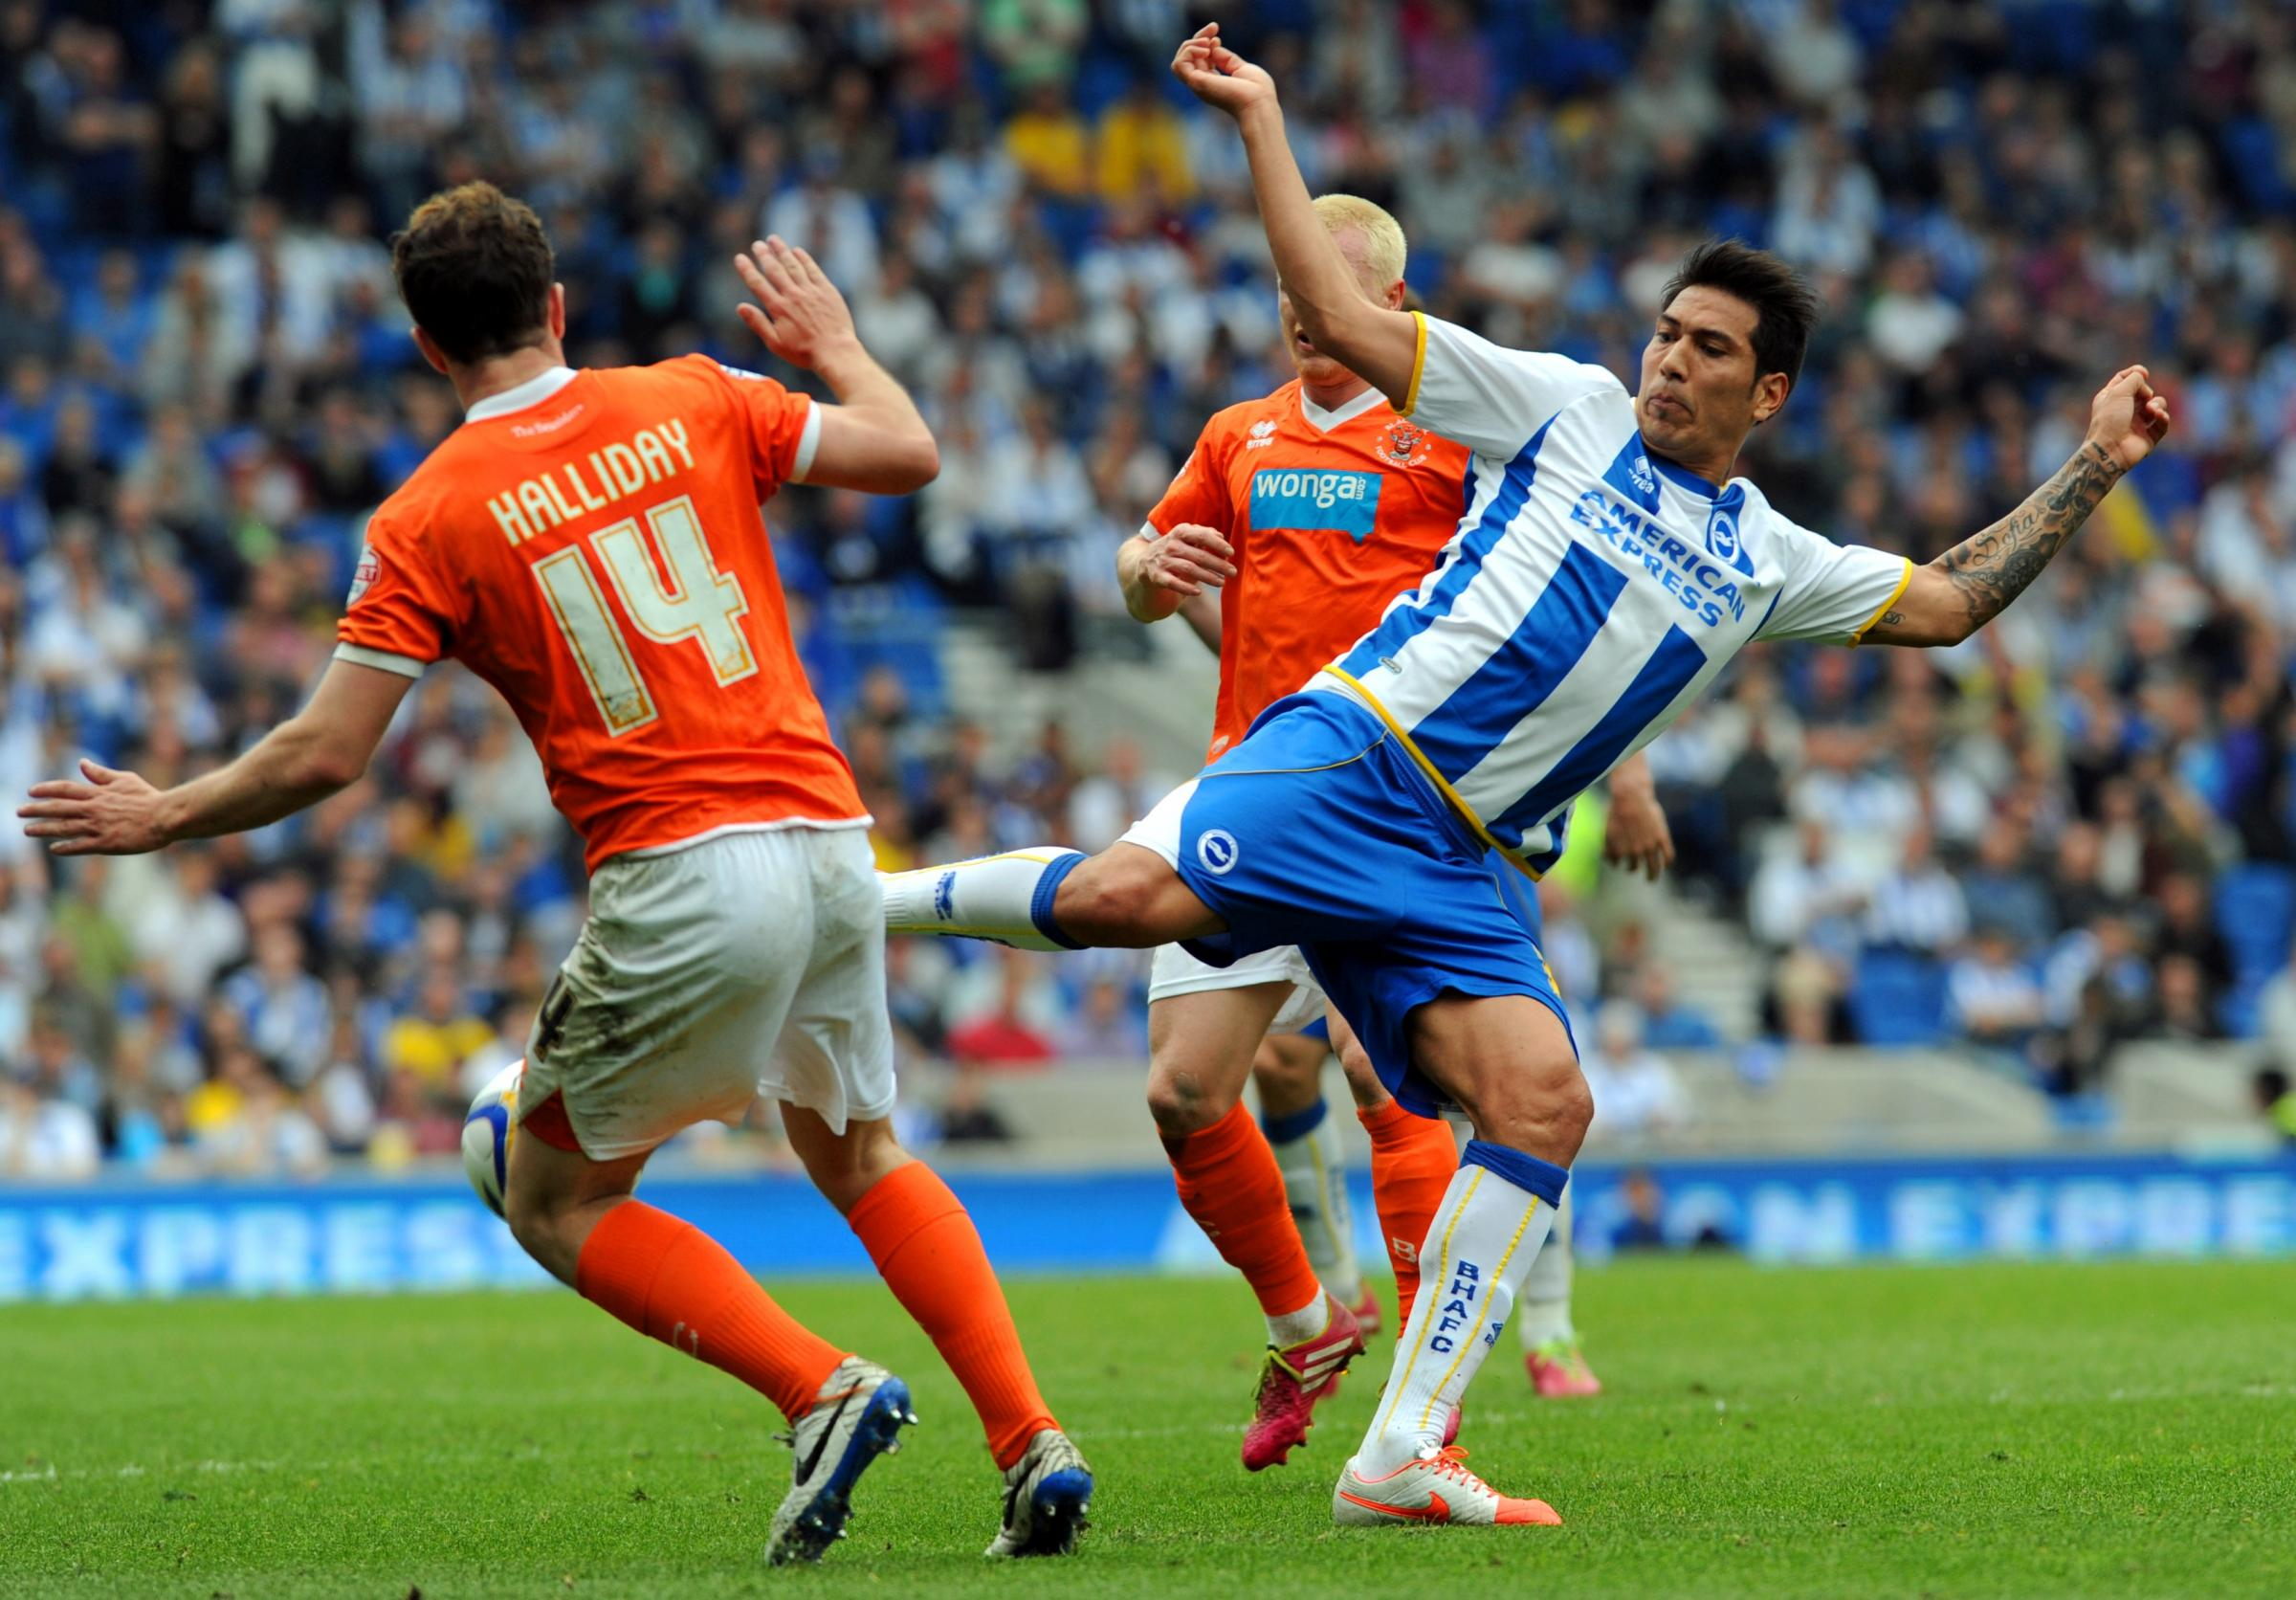 Leo Ulloa battles with the Blackpool defence today